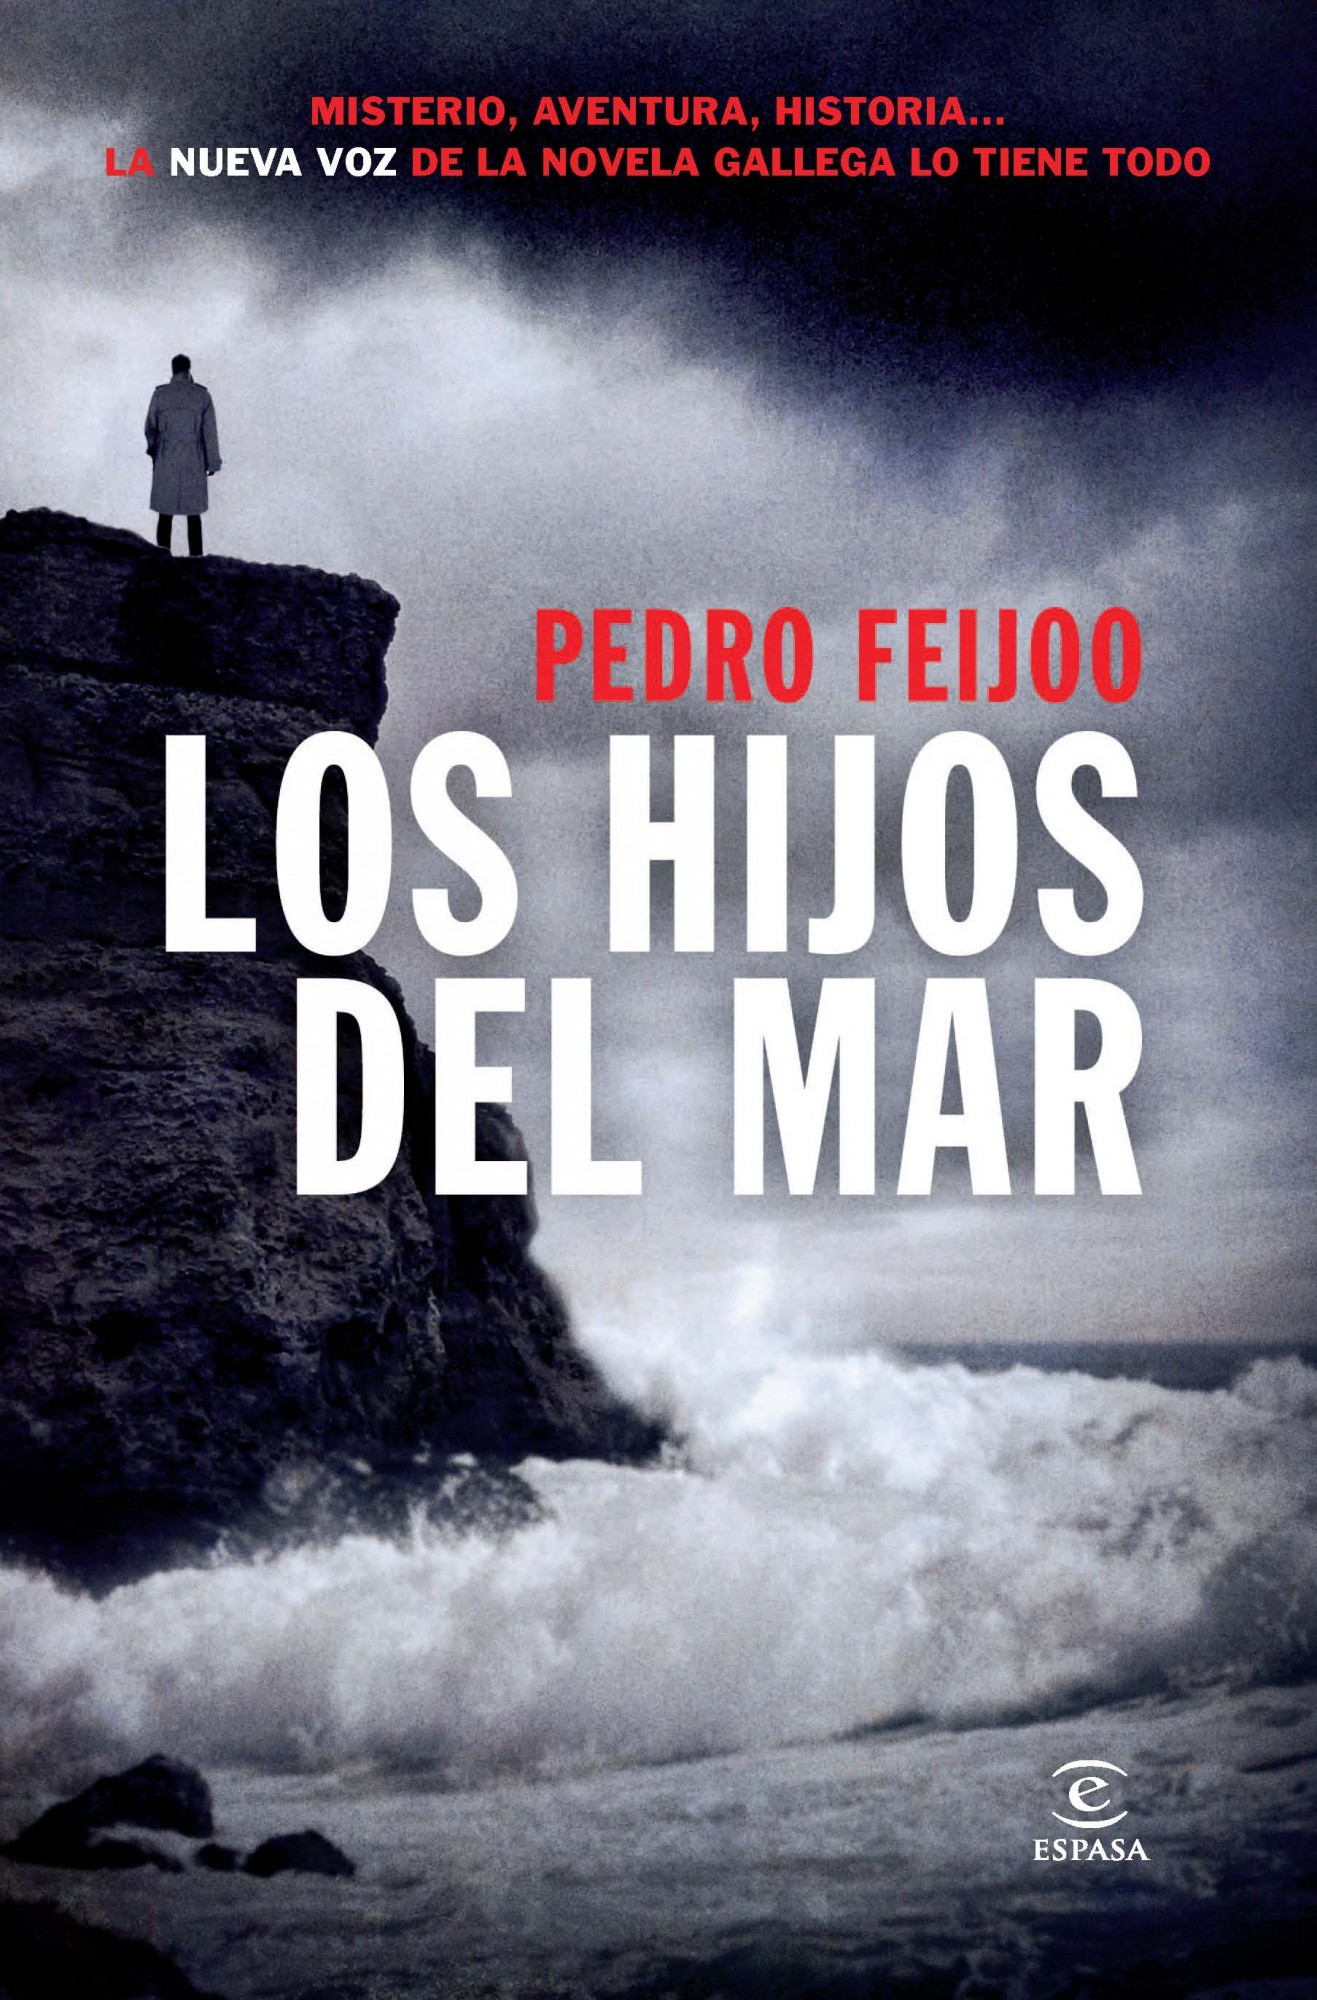 Los hijos del mar